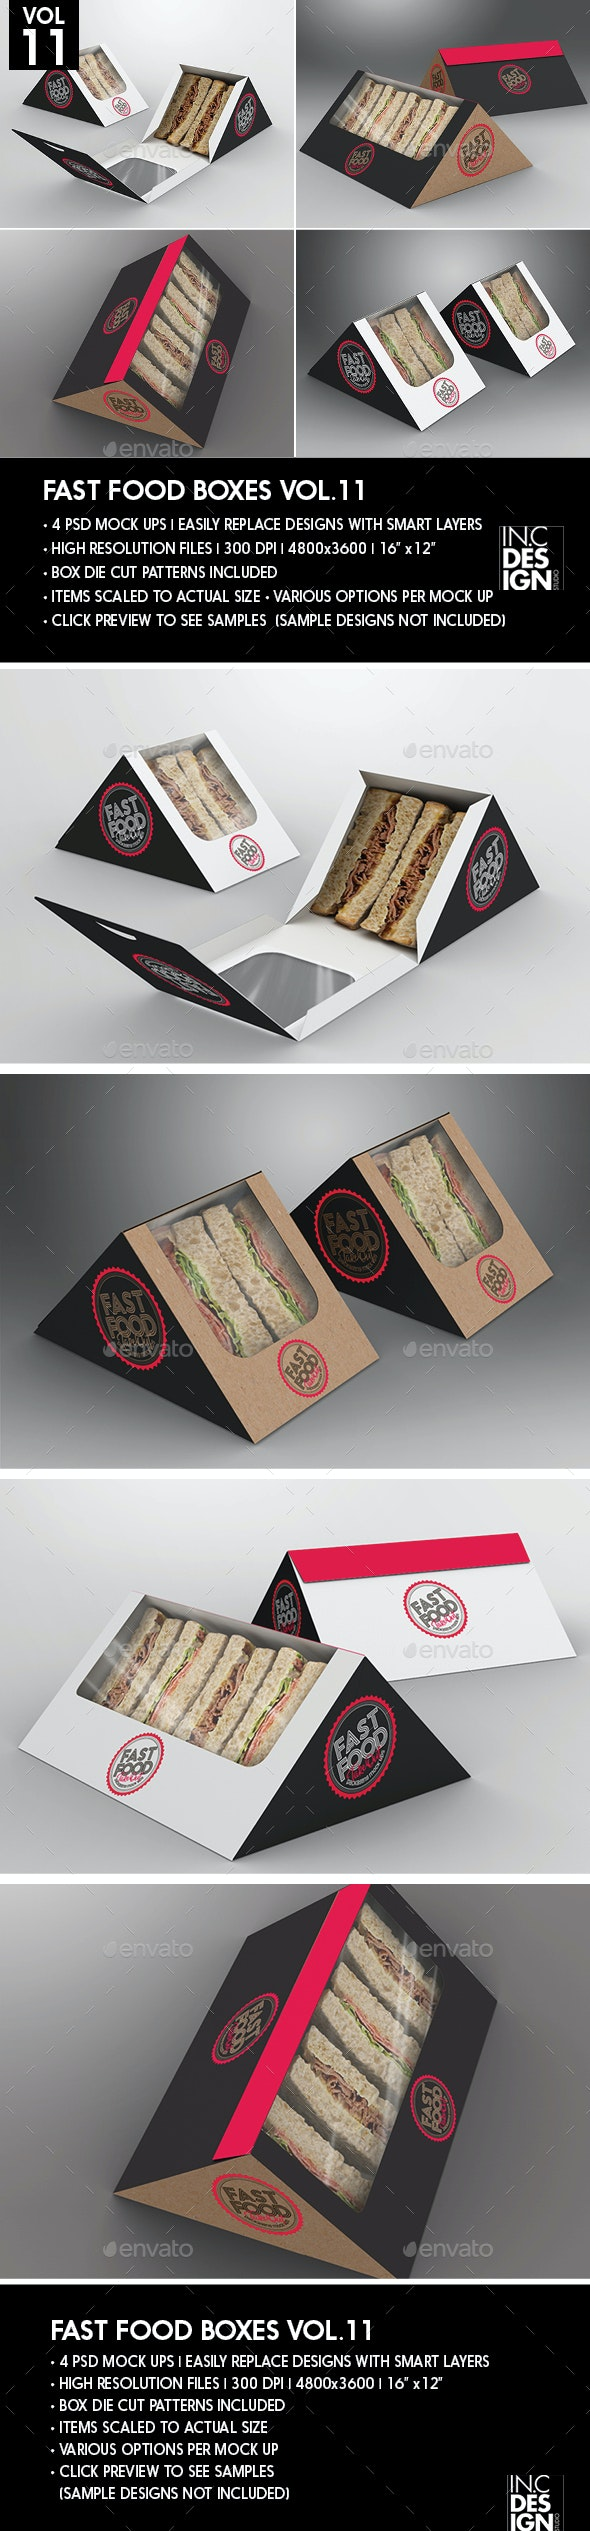 Fast Food Boxes Vol.11:Take Out Packaging Mock Ups - Food and Drink Packaging